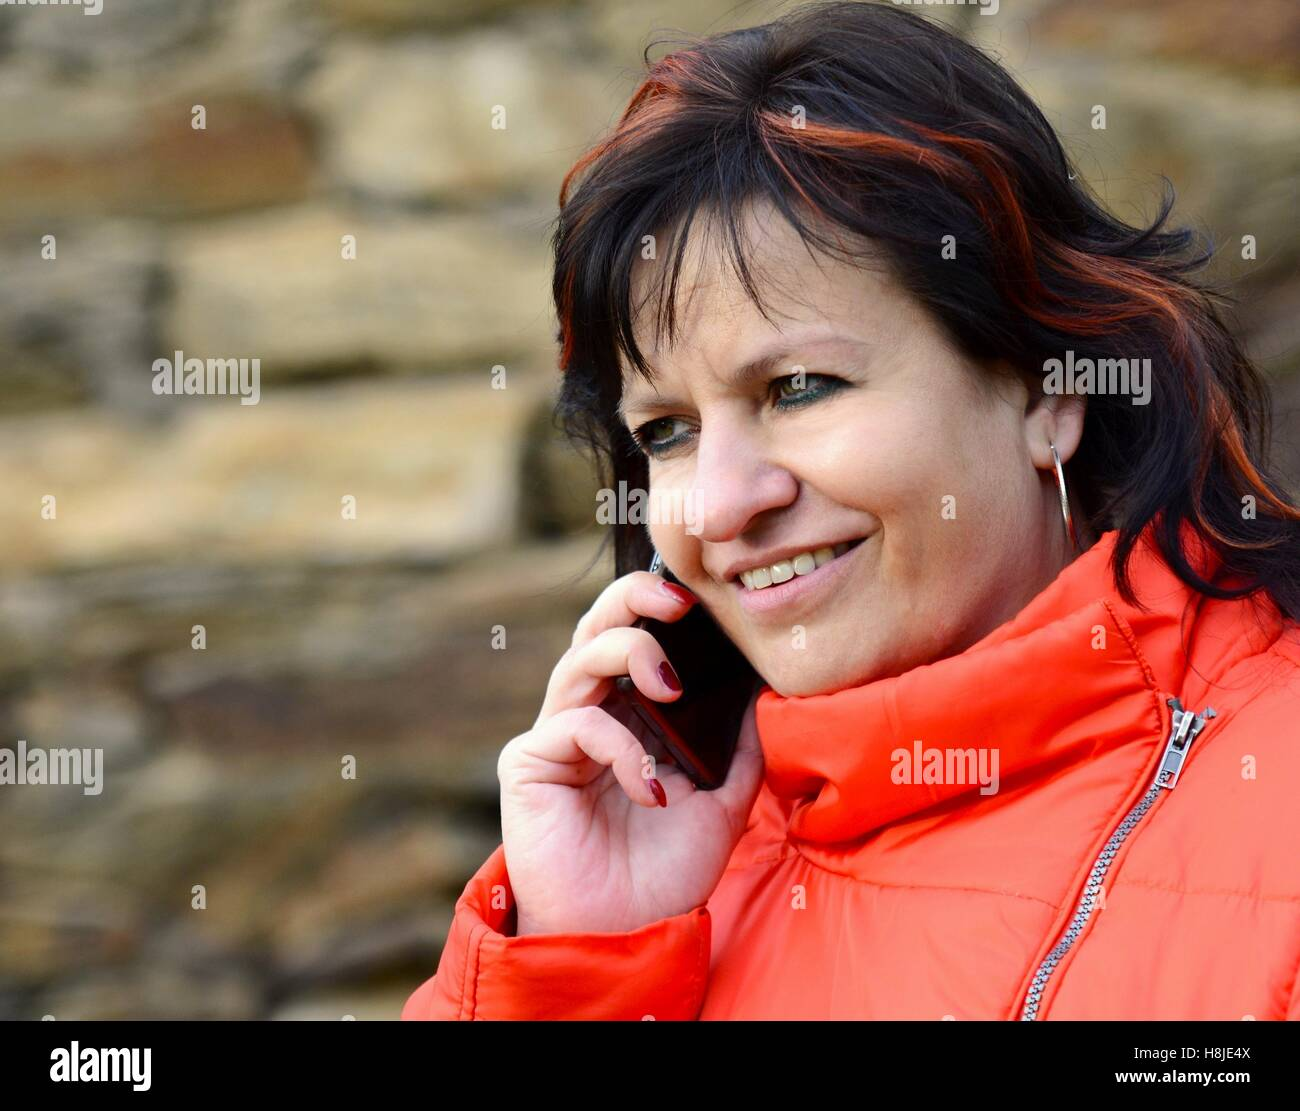 Middle aged ordinary caucasian woman standing in front of a stone wall with long dark hair and red jacket talking Stock Photo